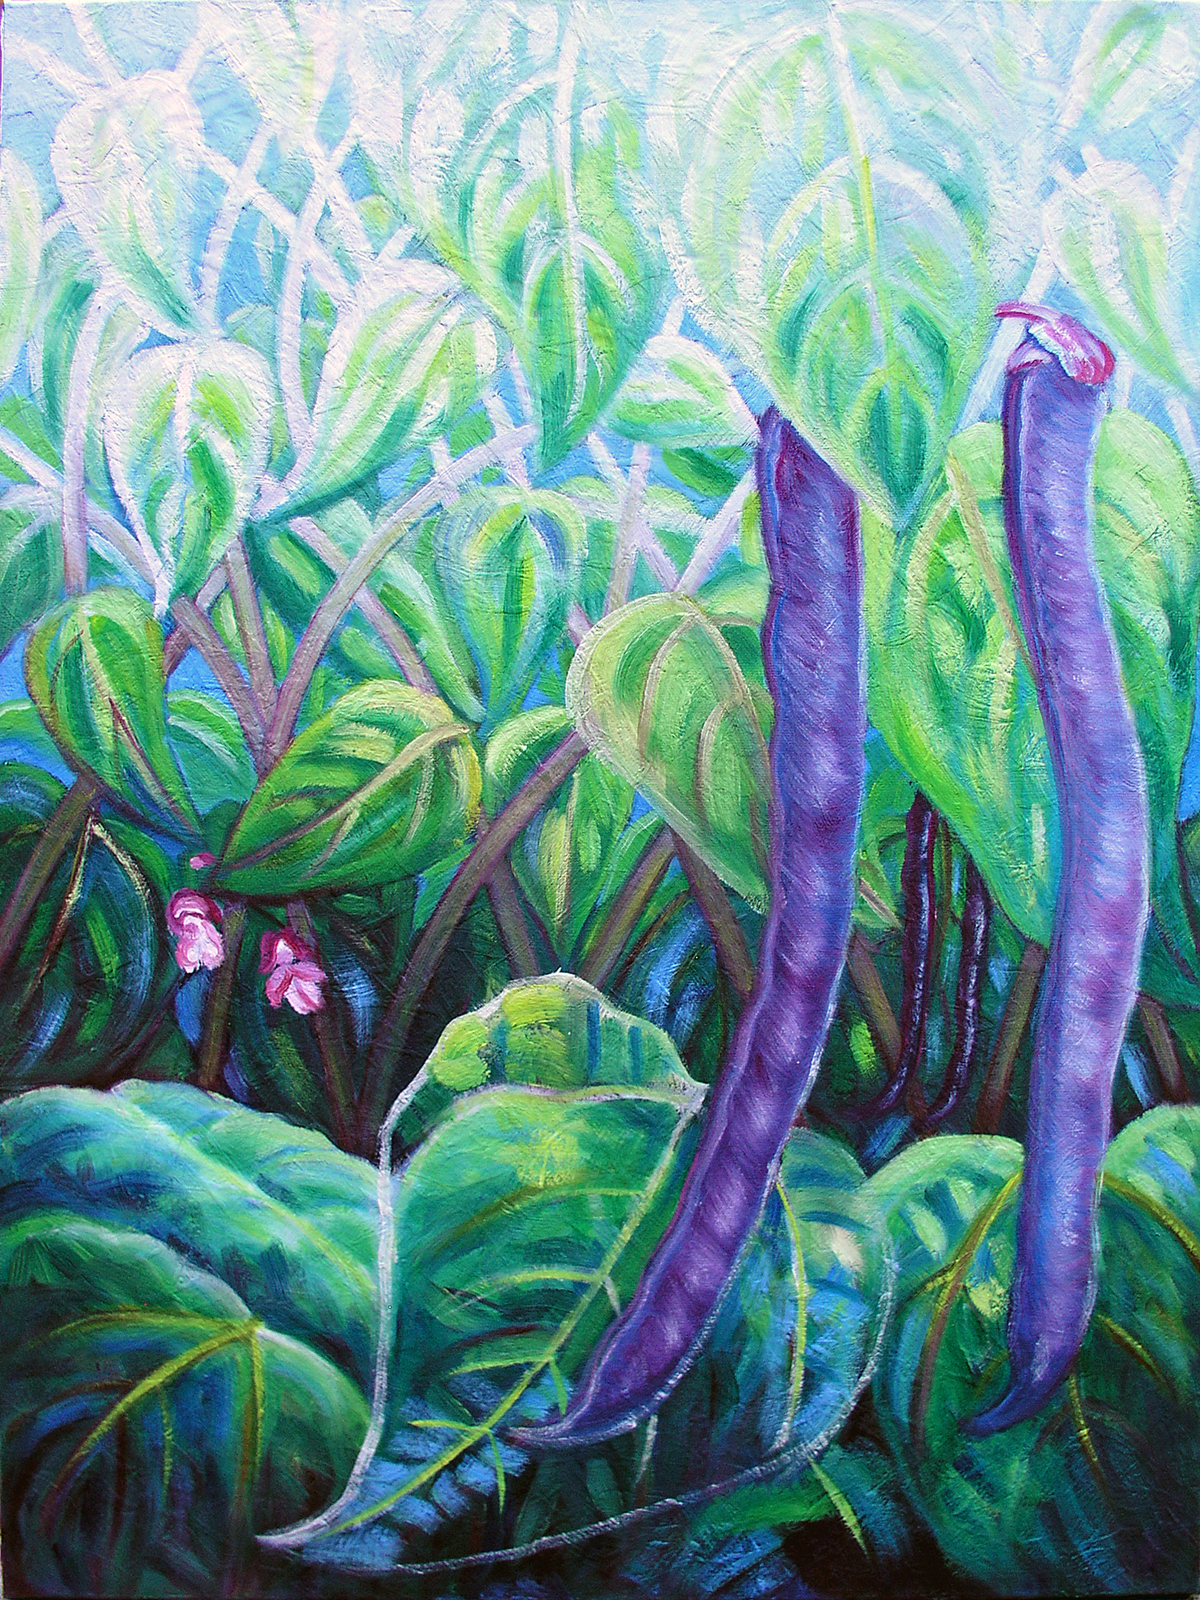 "Phaseolus Vulgaris, 'Royal Burgandy', 2016 Marion-Lea Jamieson Oil on canvas 24"" h x 18"" w"